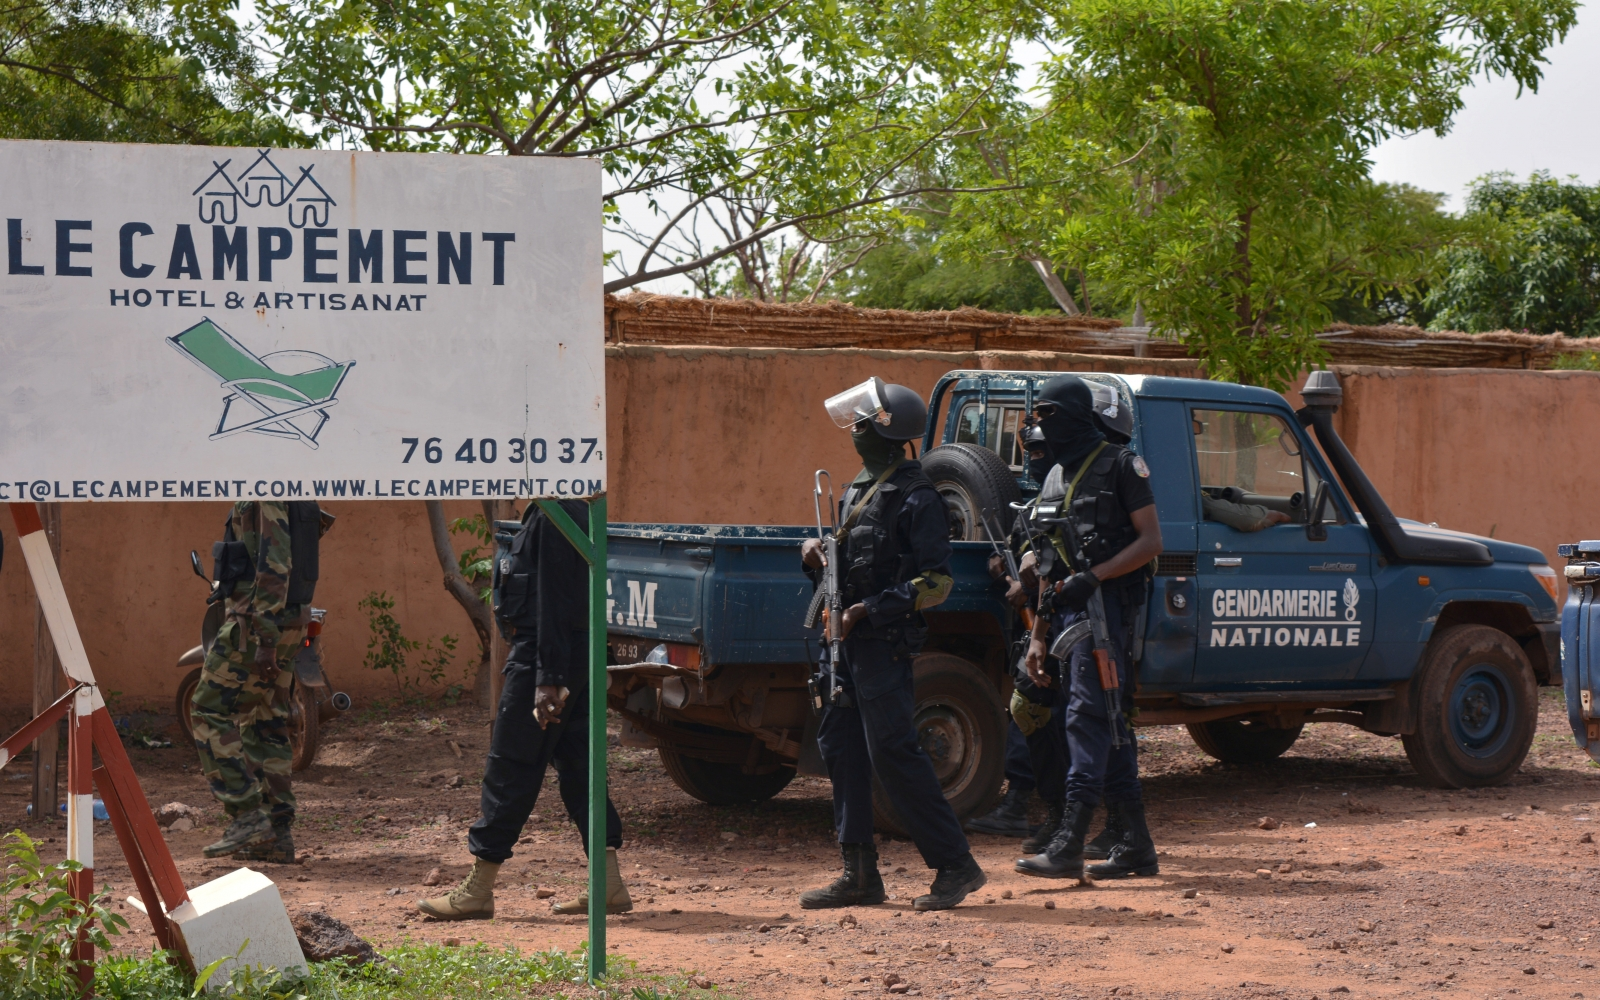 Al-Qaeda-linked jihadists claim responsibility for Mali resort attack